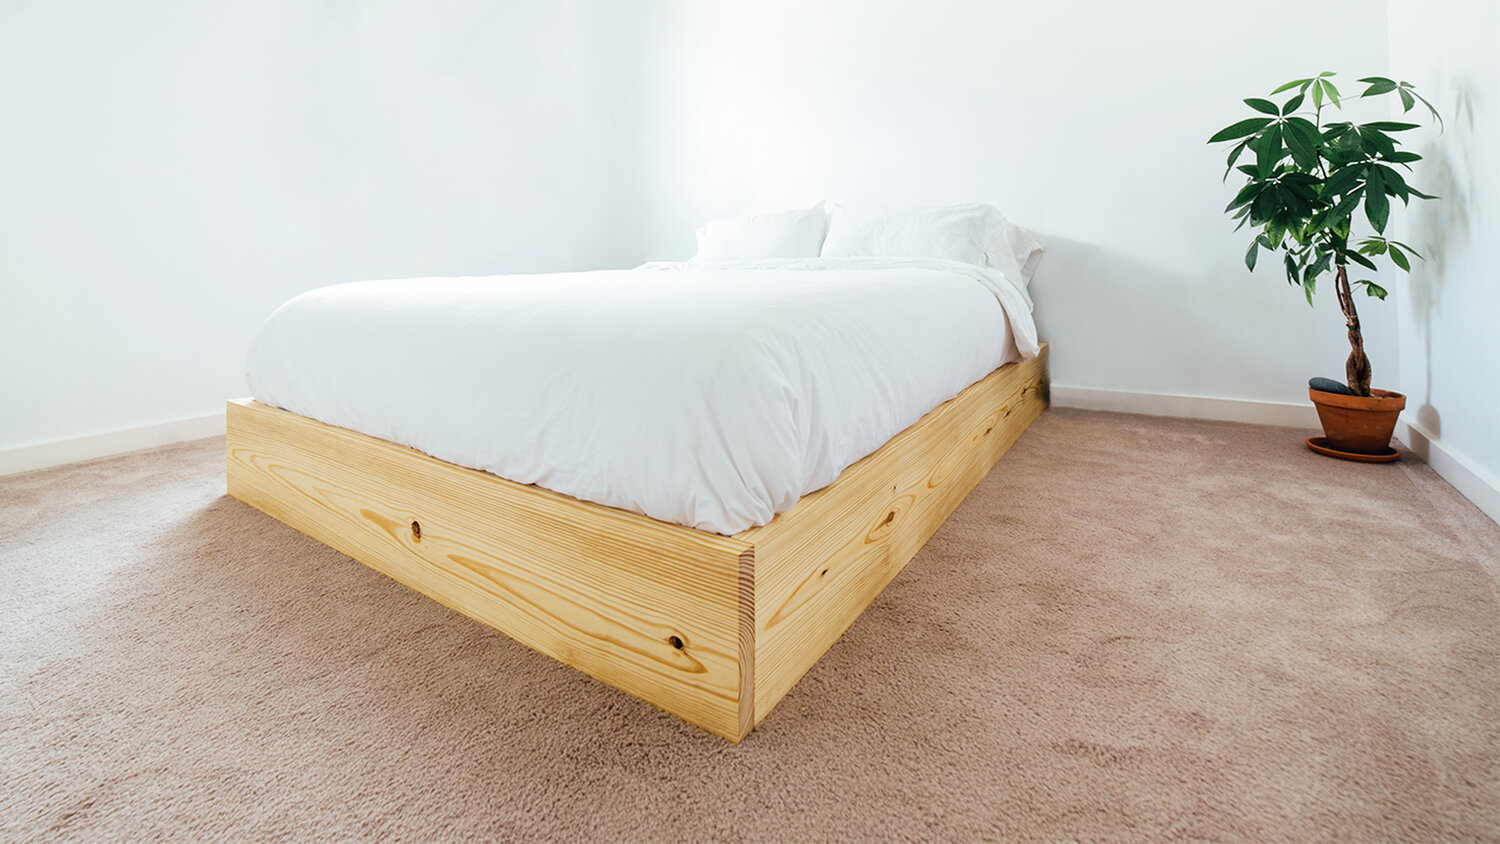 How To Build An Easy Bed Platform — MAKER GRAY